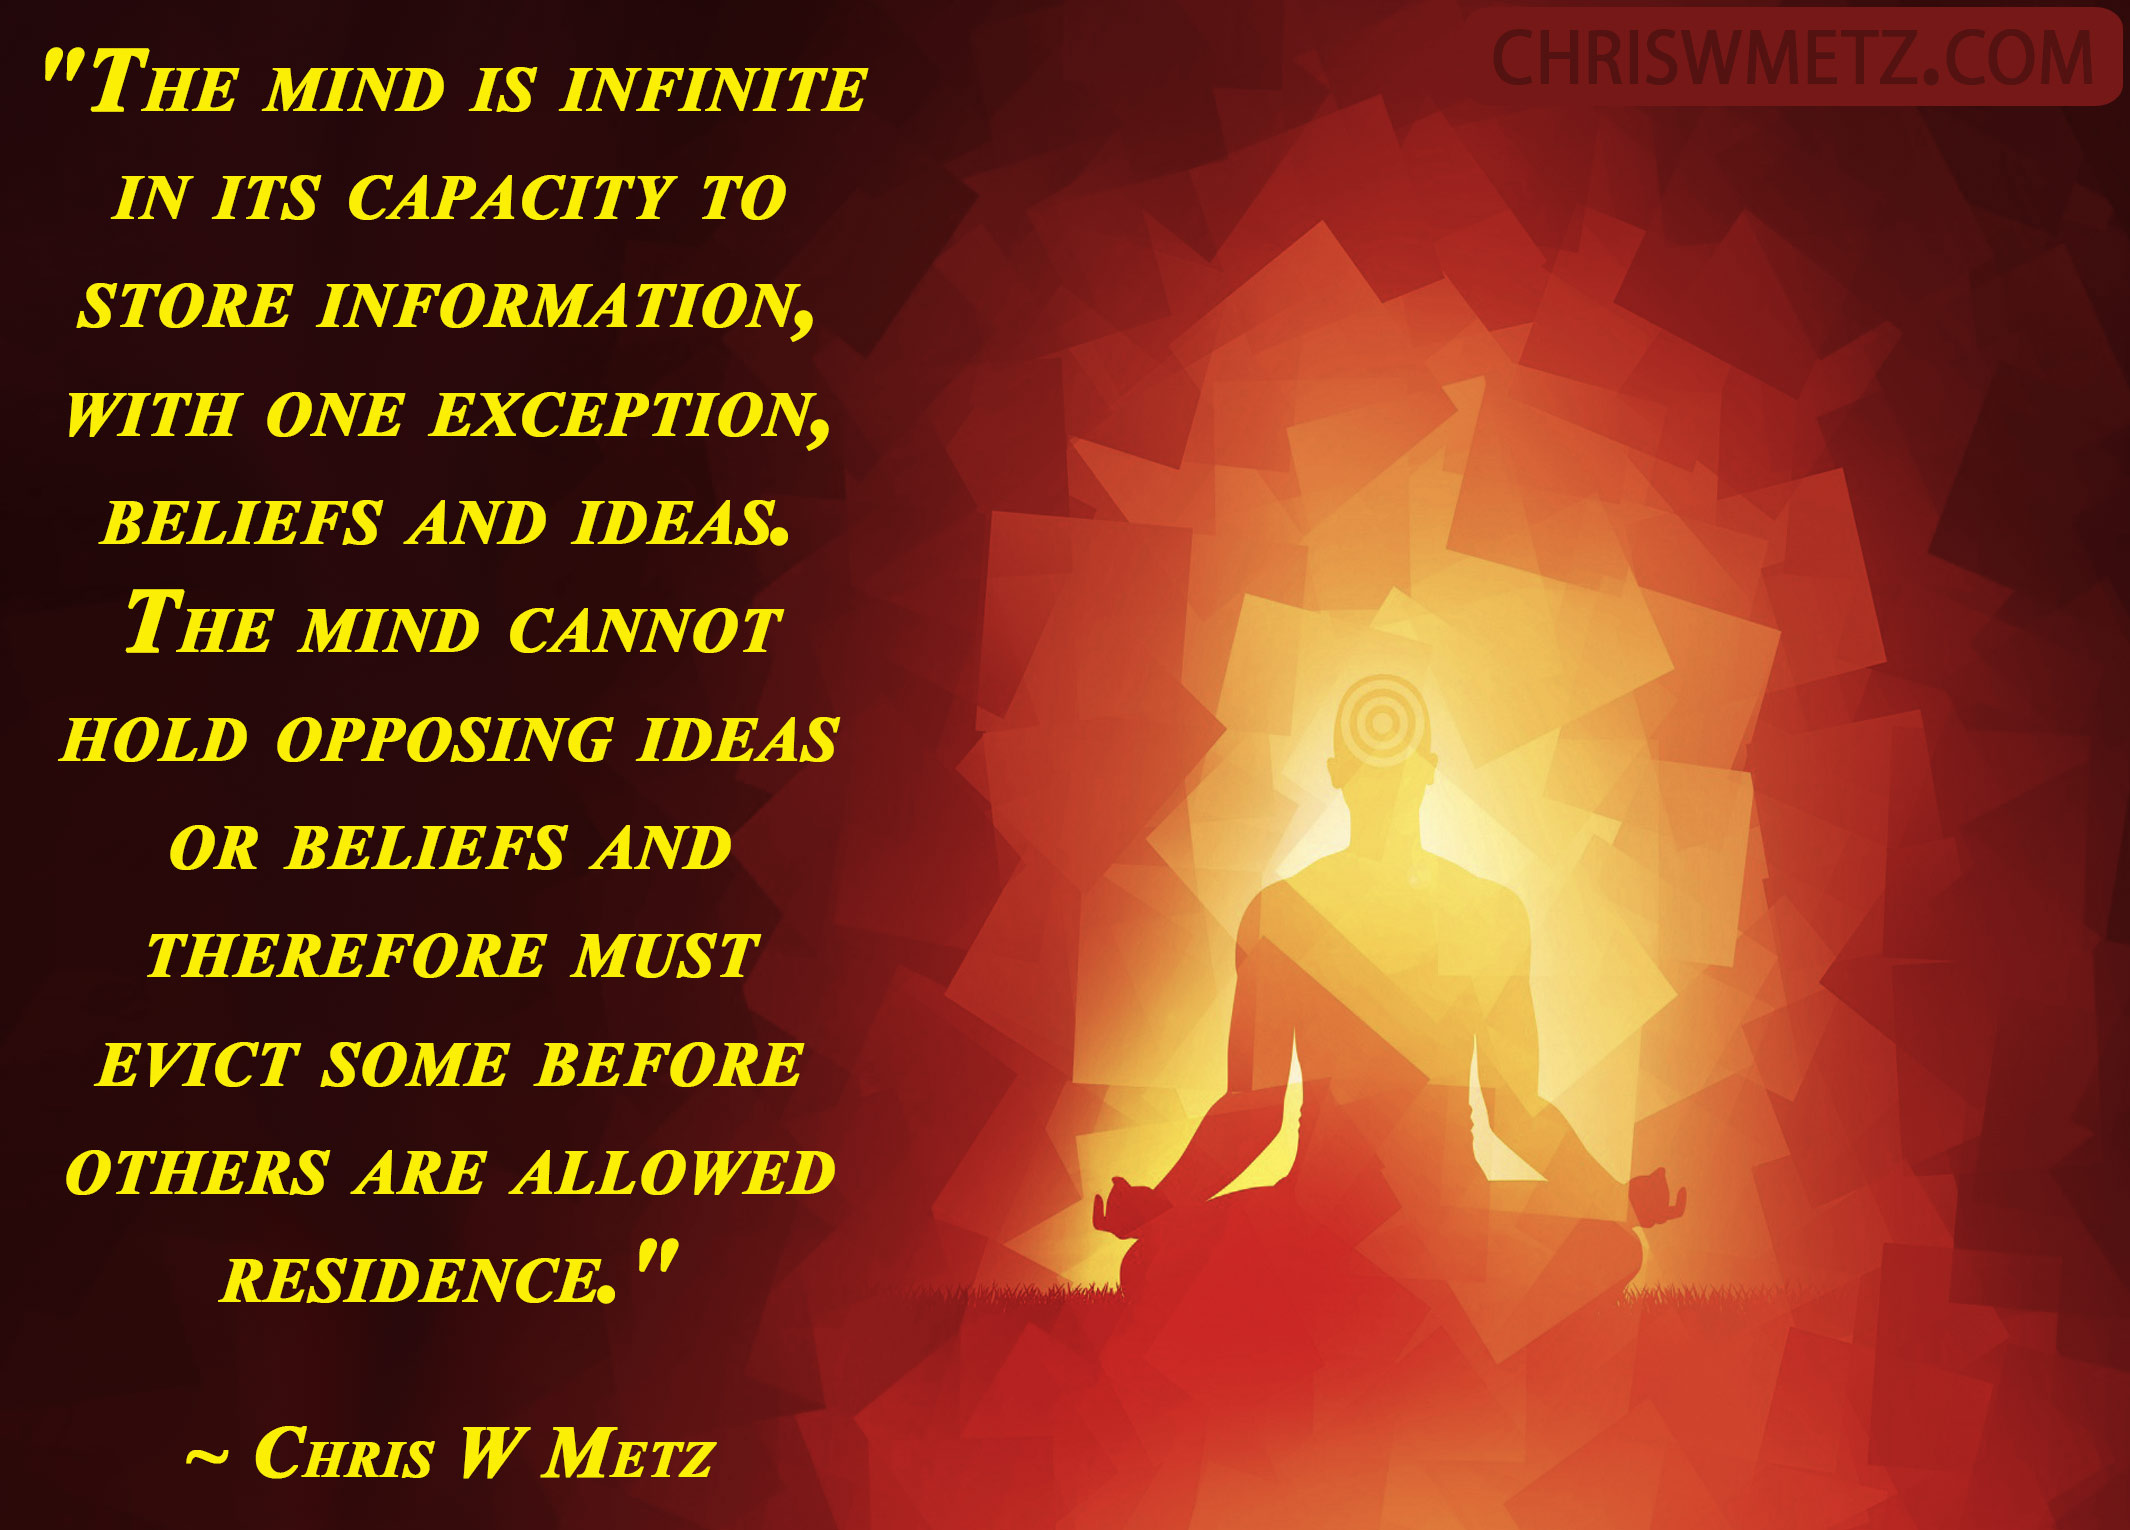 Beliefs Quote 12 Chris W Metz Finding Peace by letting go of old ideas and beliefs